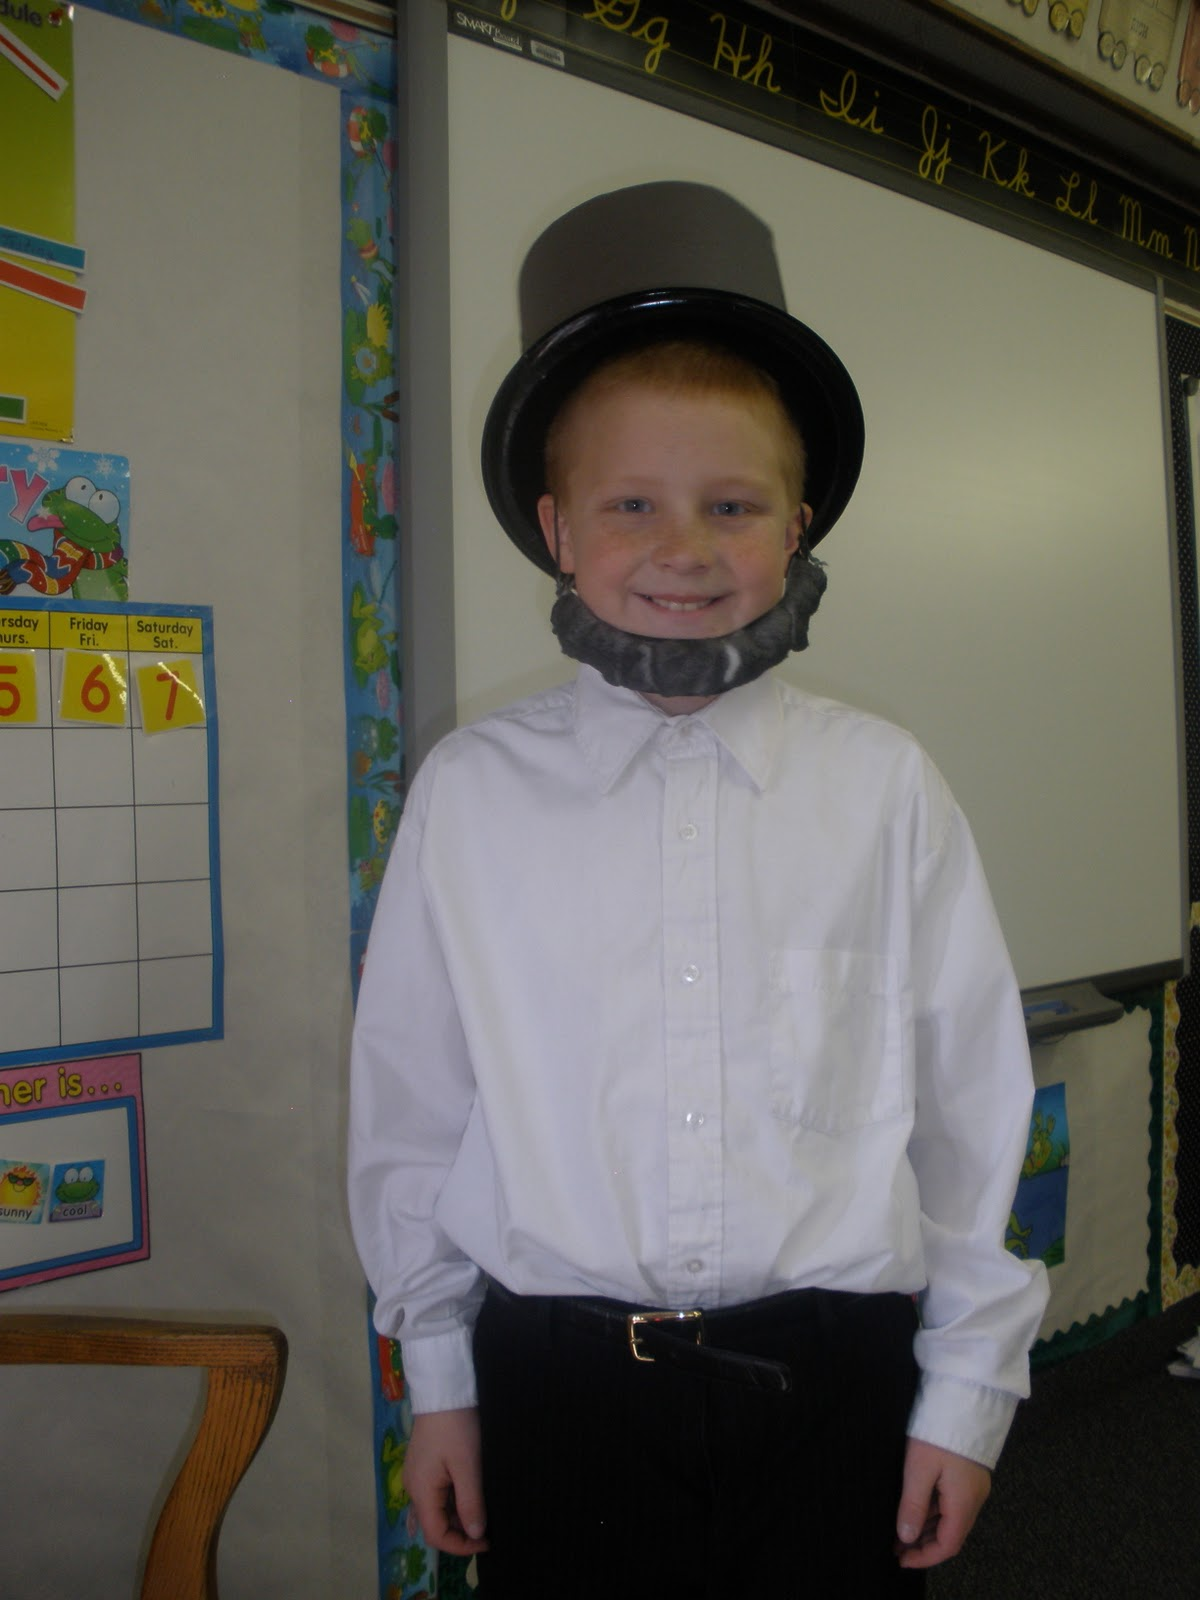 Miss Snapp S 4th Grade Biography Wax Museum